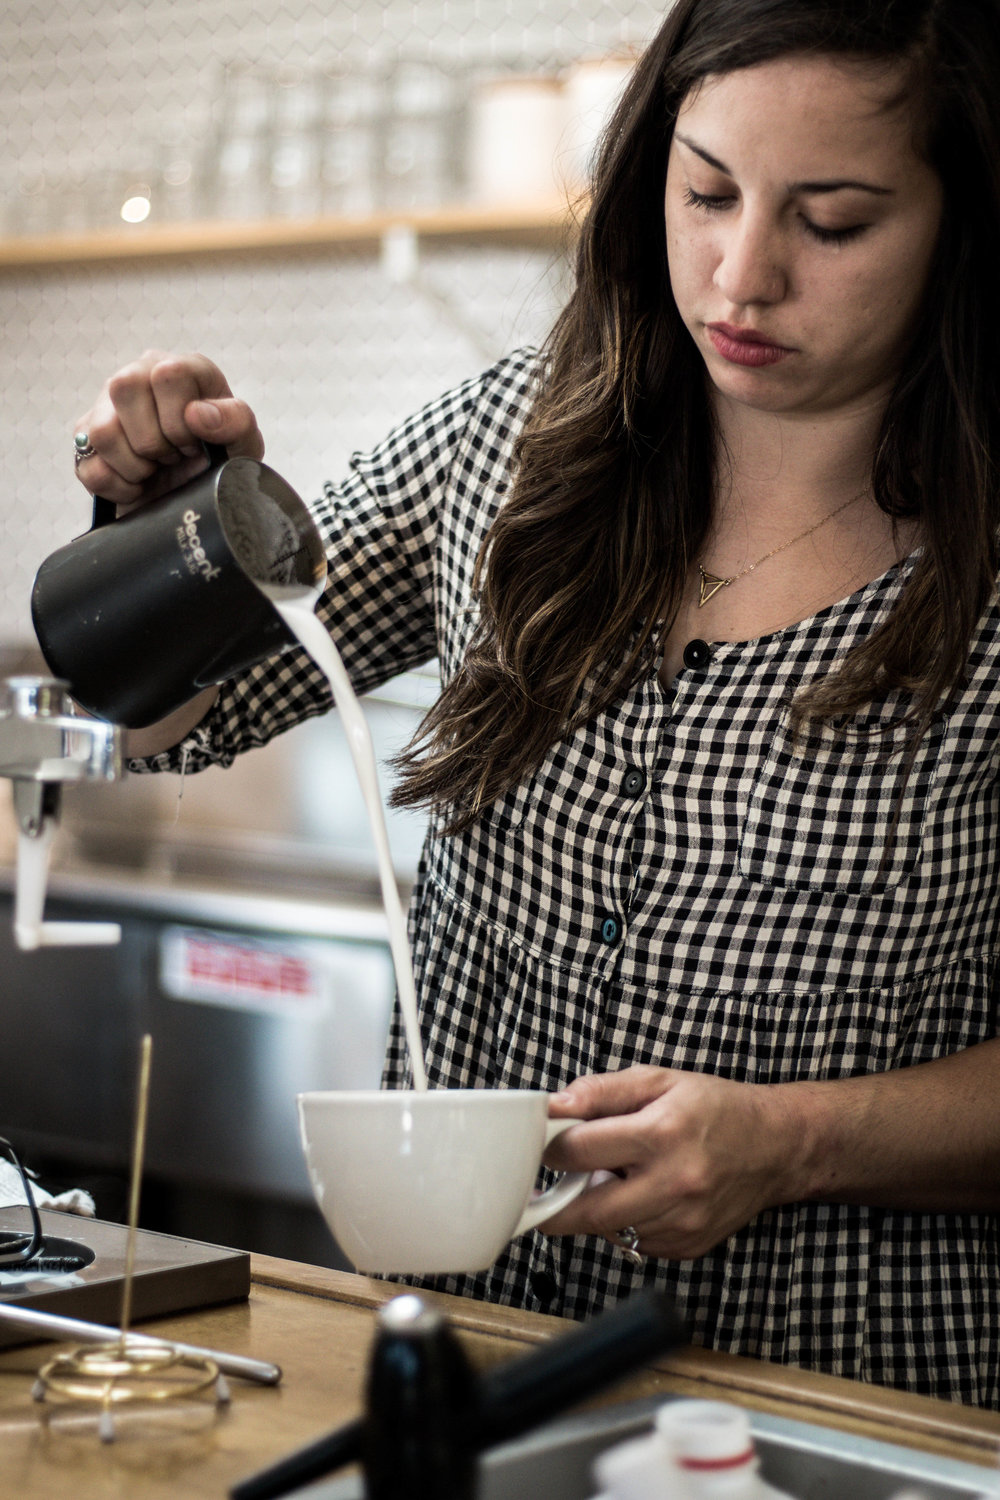 coffee barista pouring milk to prepare a latte at communal coffee